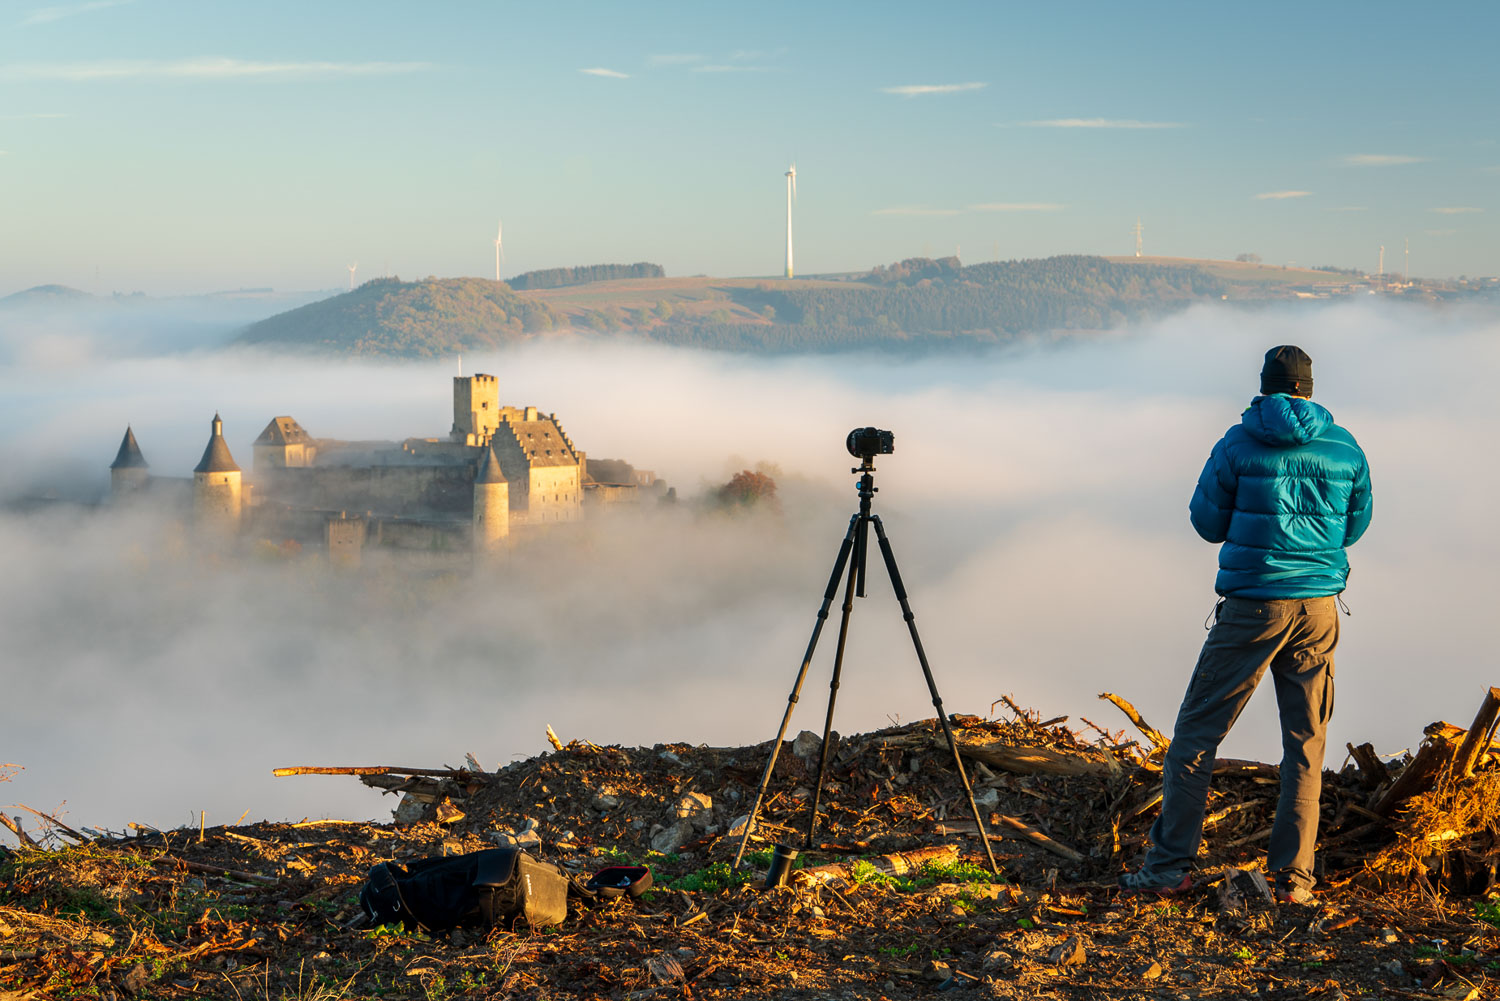 Bourscheid Castle in the fog - Chateau de Bourscheid - Luxembourg - 1-to-1 Photography Workshop in Luxembourg with Christophe Van Biesen - Photo by Alfonso Salgueiro Lora